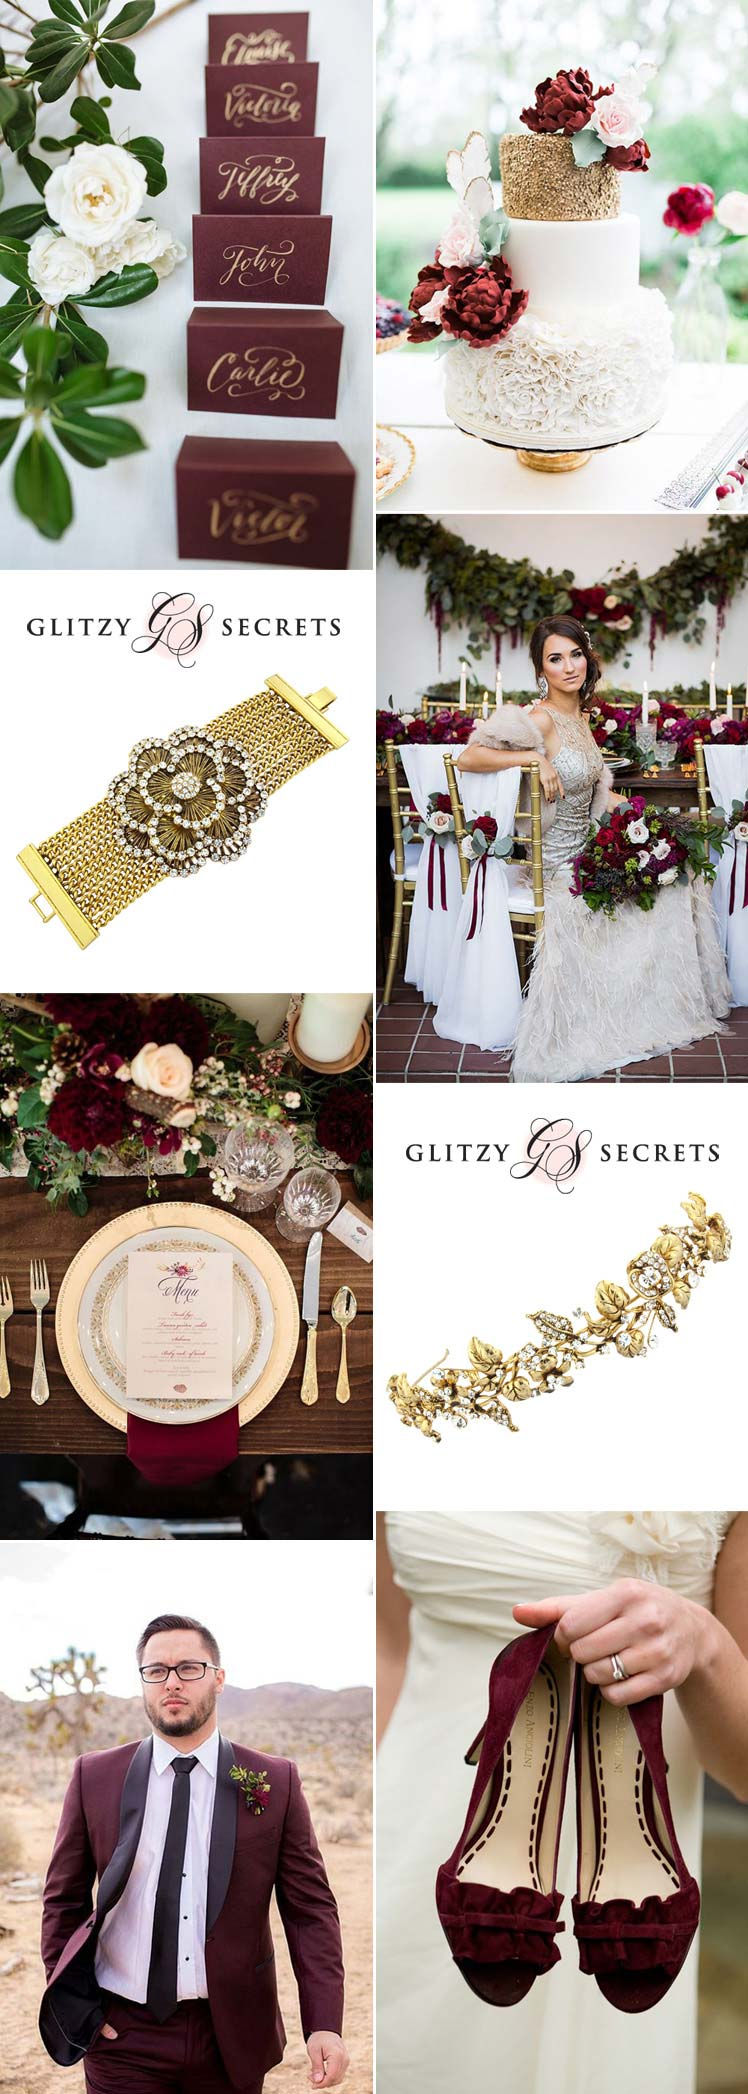 Burgundy and Gold wedding theme ideas